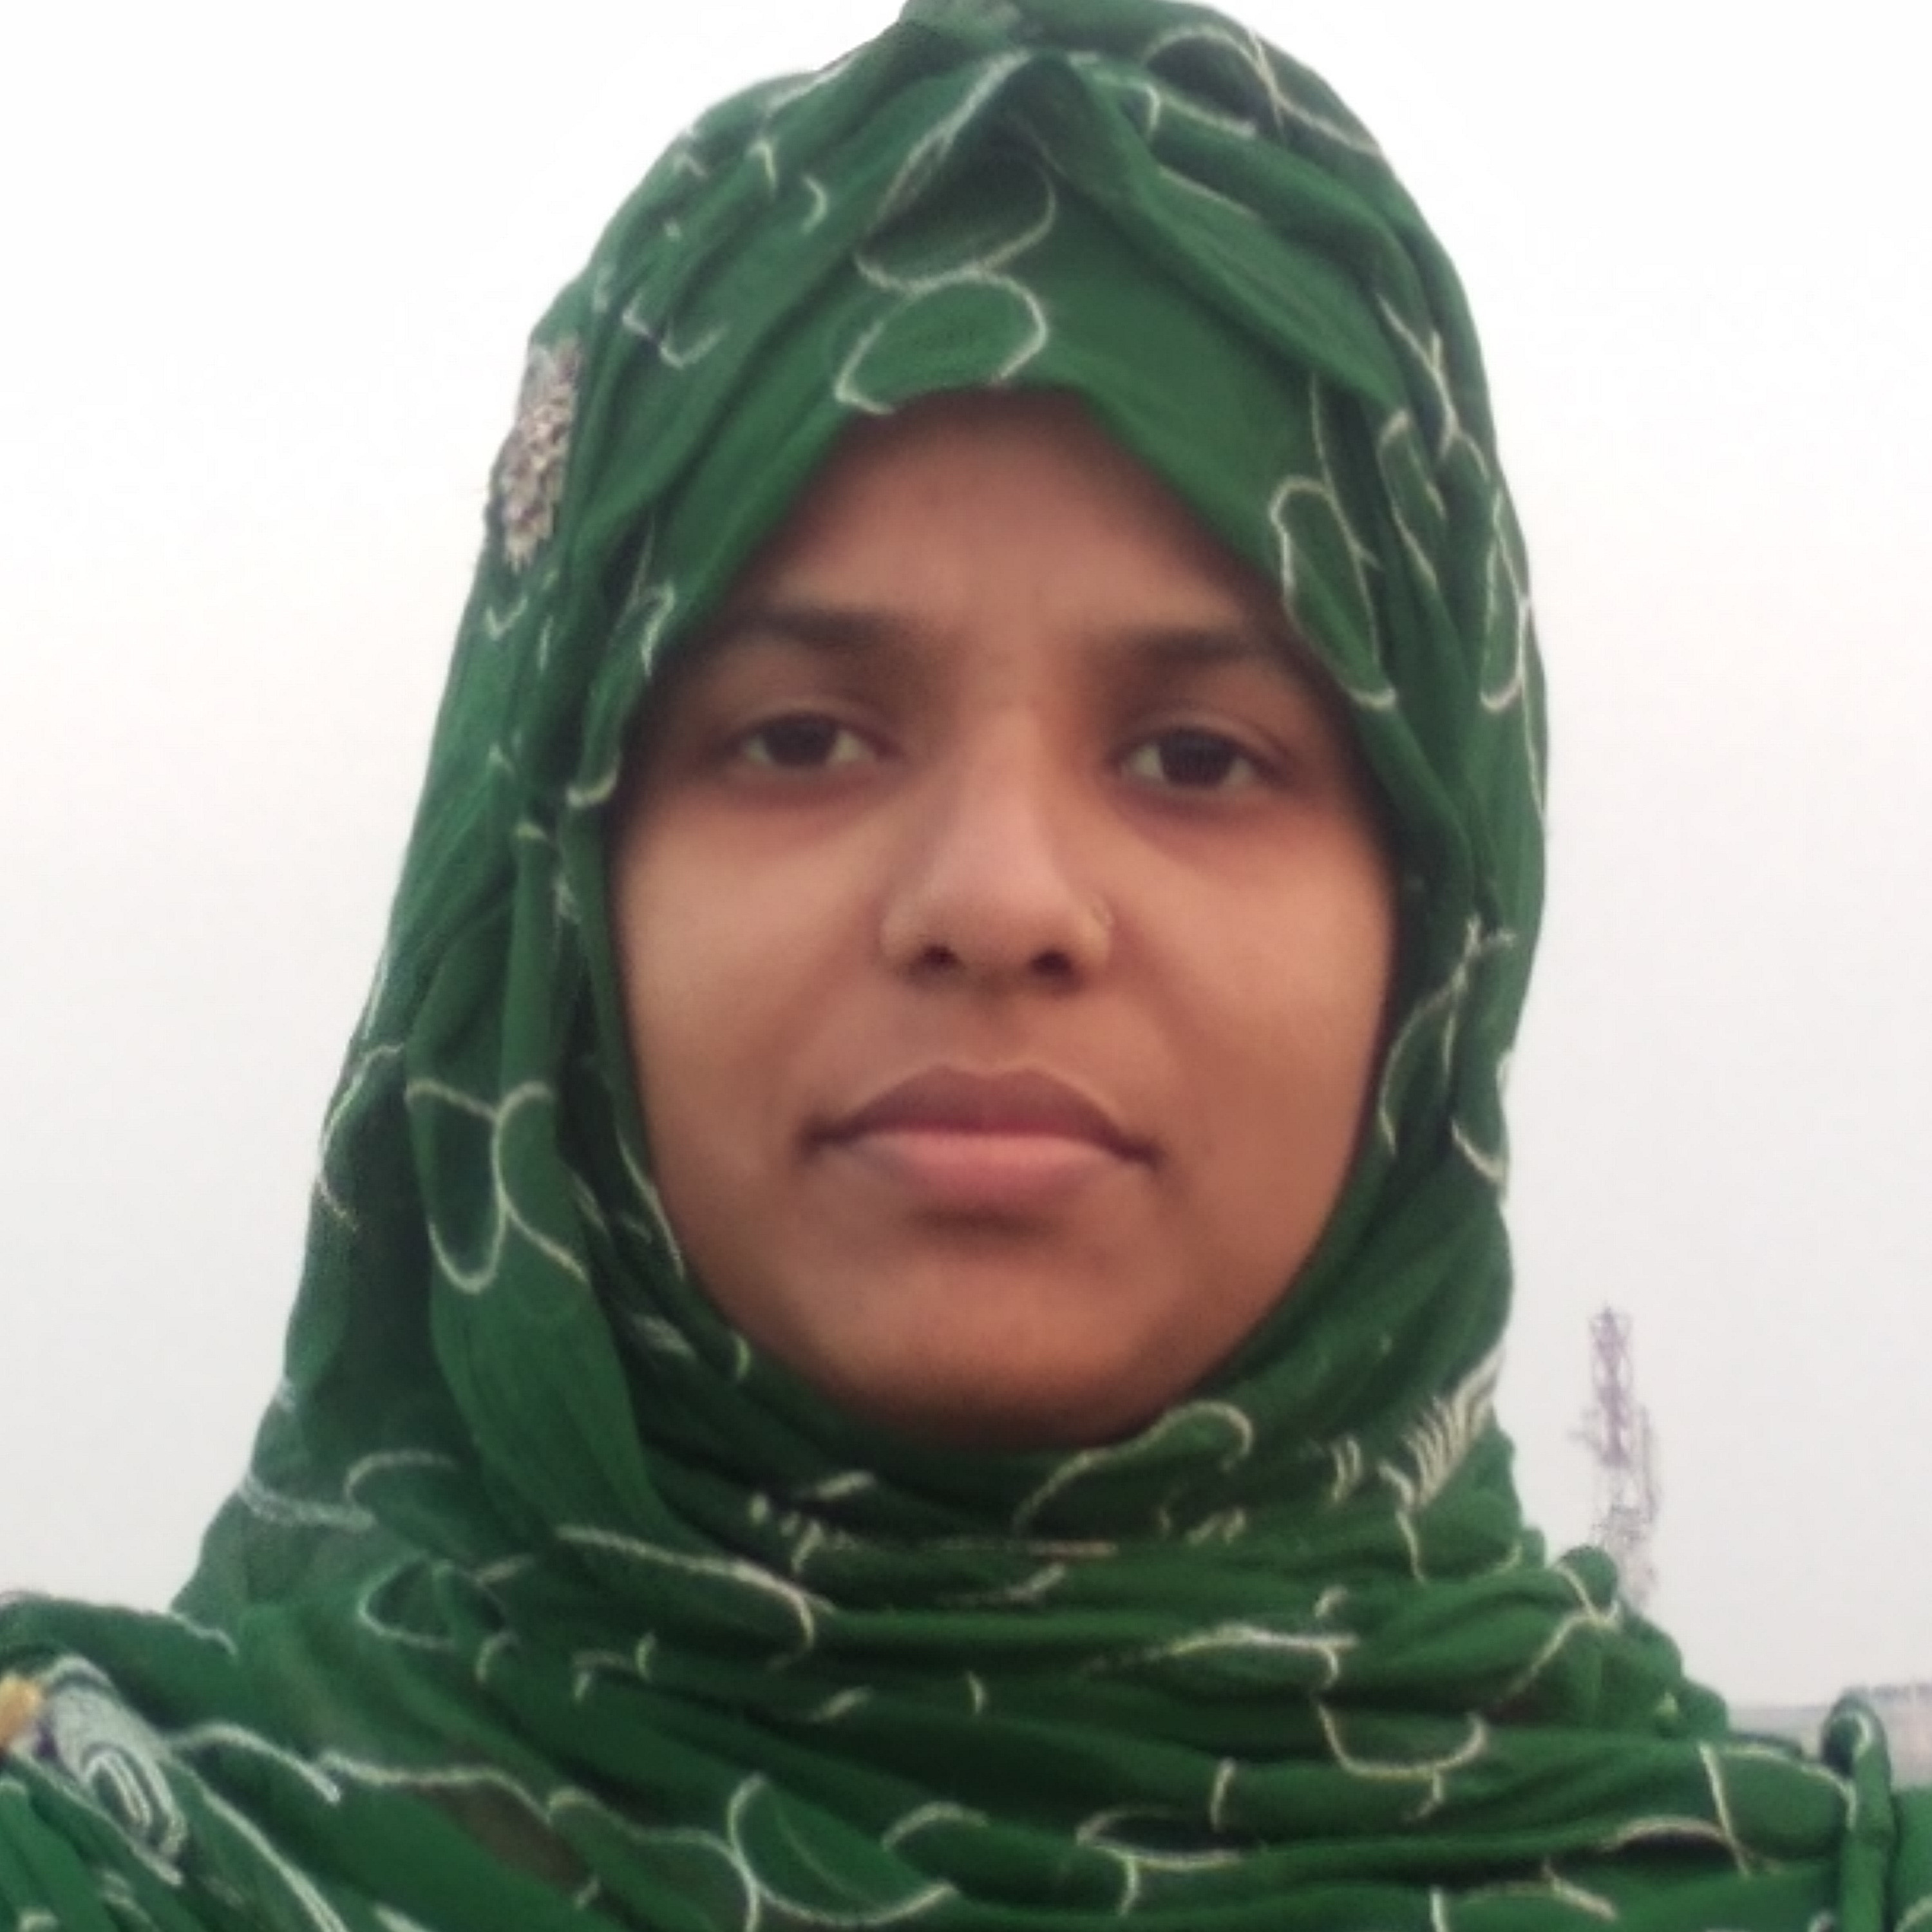 Sheulyakter6152's profile picture